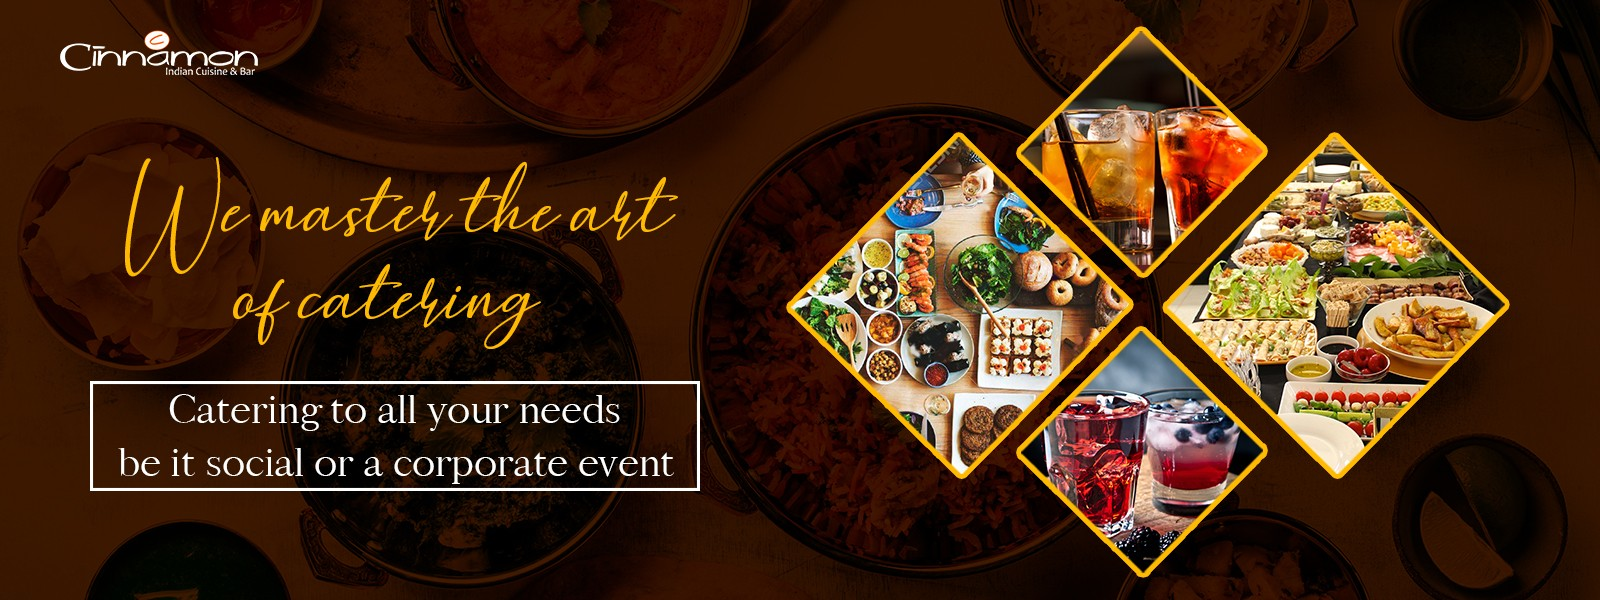 Catering Website Banner 5 En